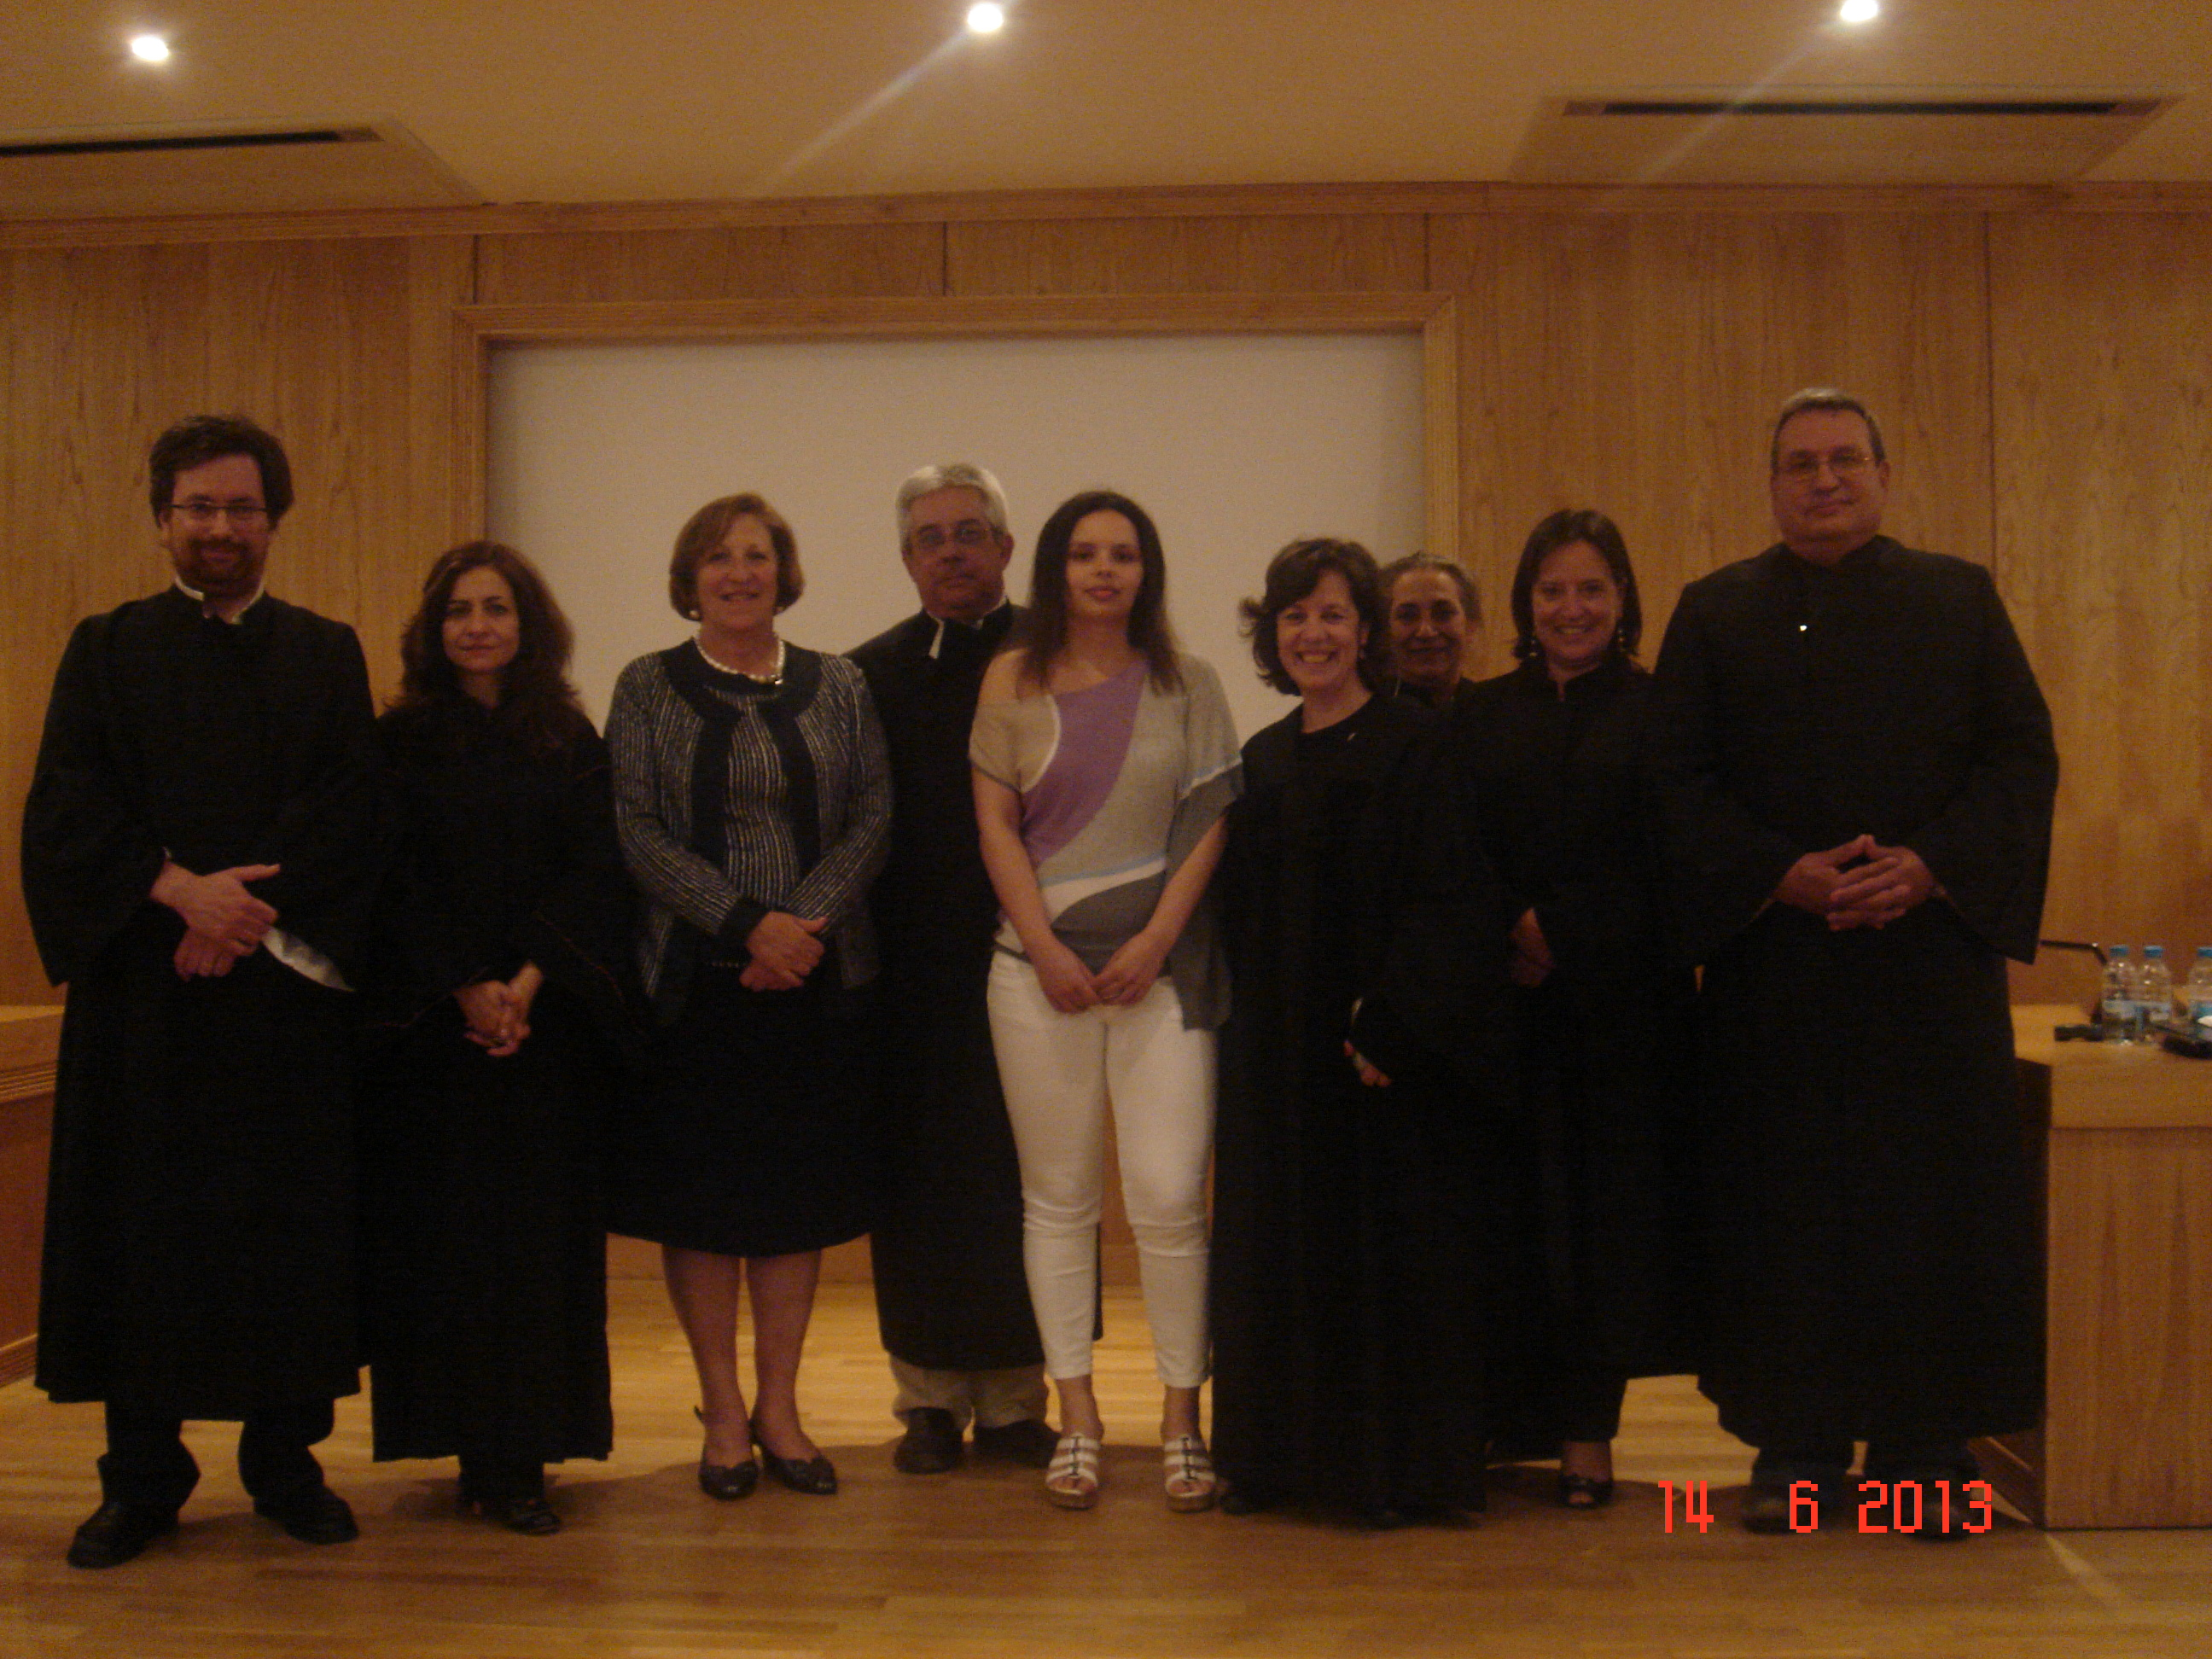 Doutoramento de Catarina Soares/PhD of Catarina Soares